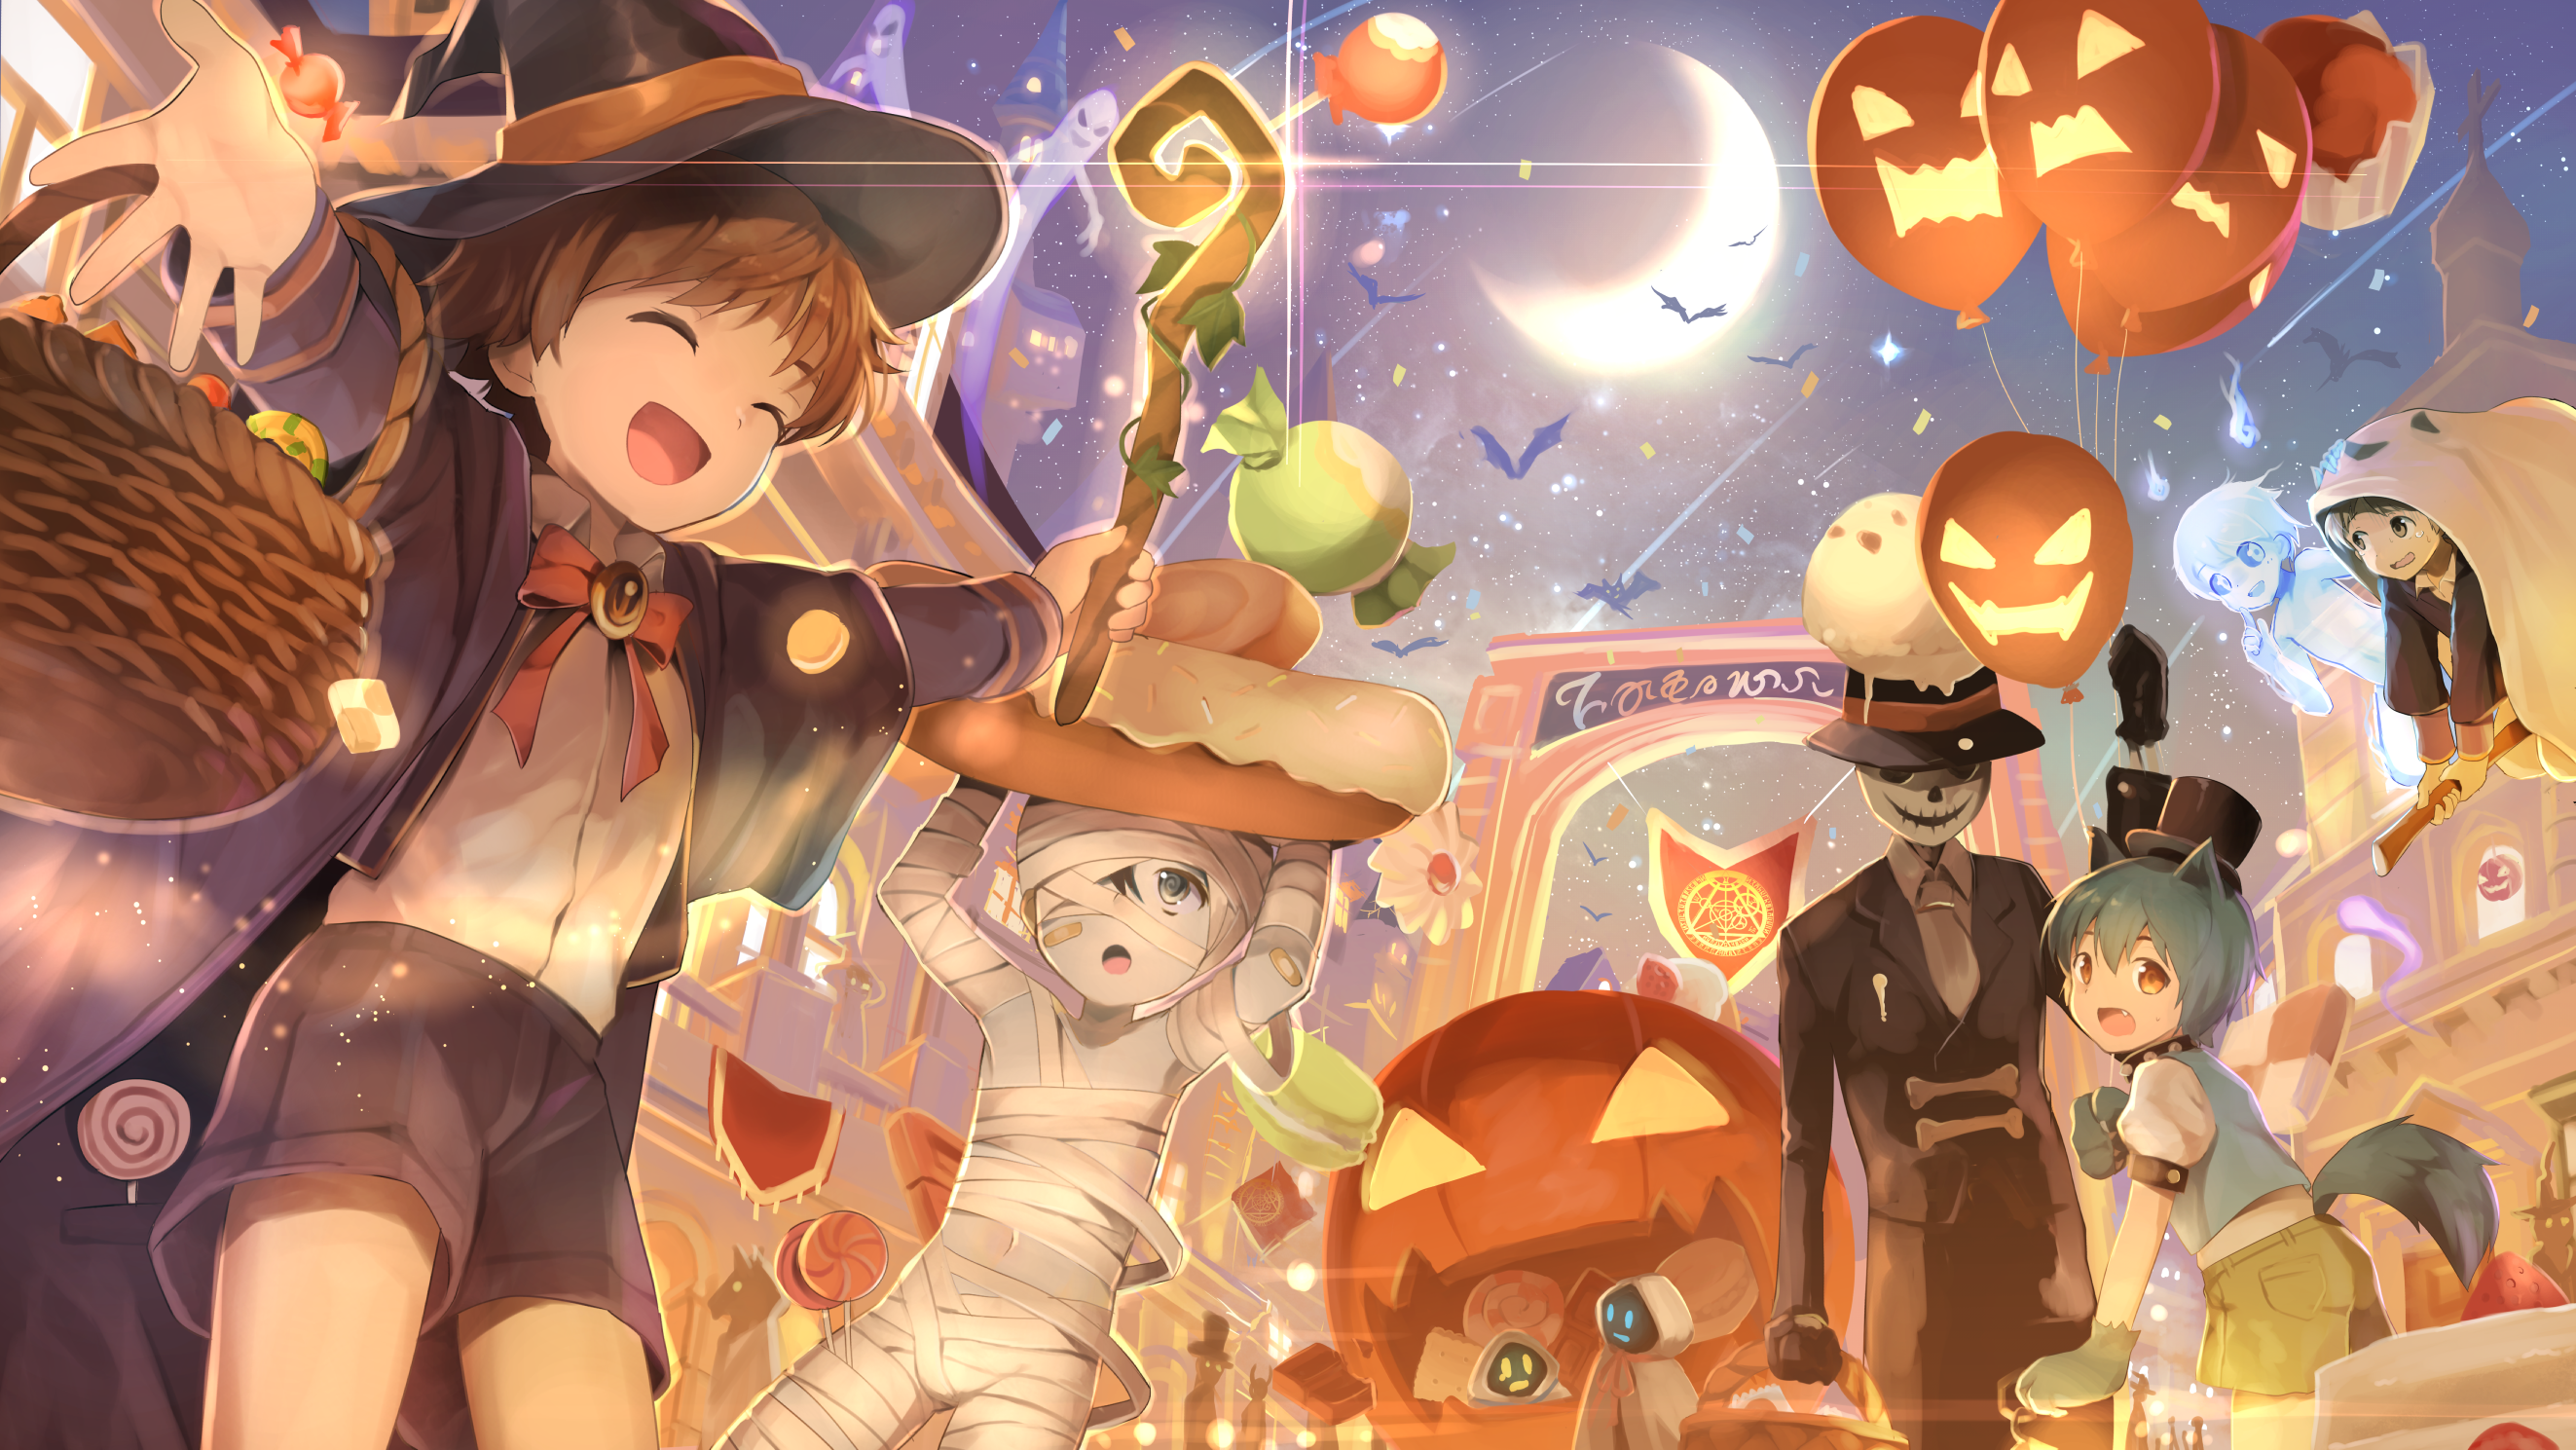 Anime Halloween Wallpapers Top Free Anime Halloween Backgrounds Wallpaperaccess